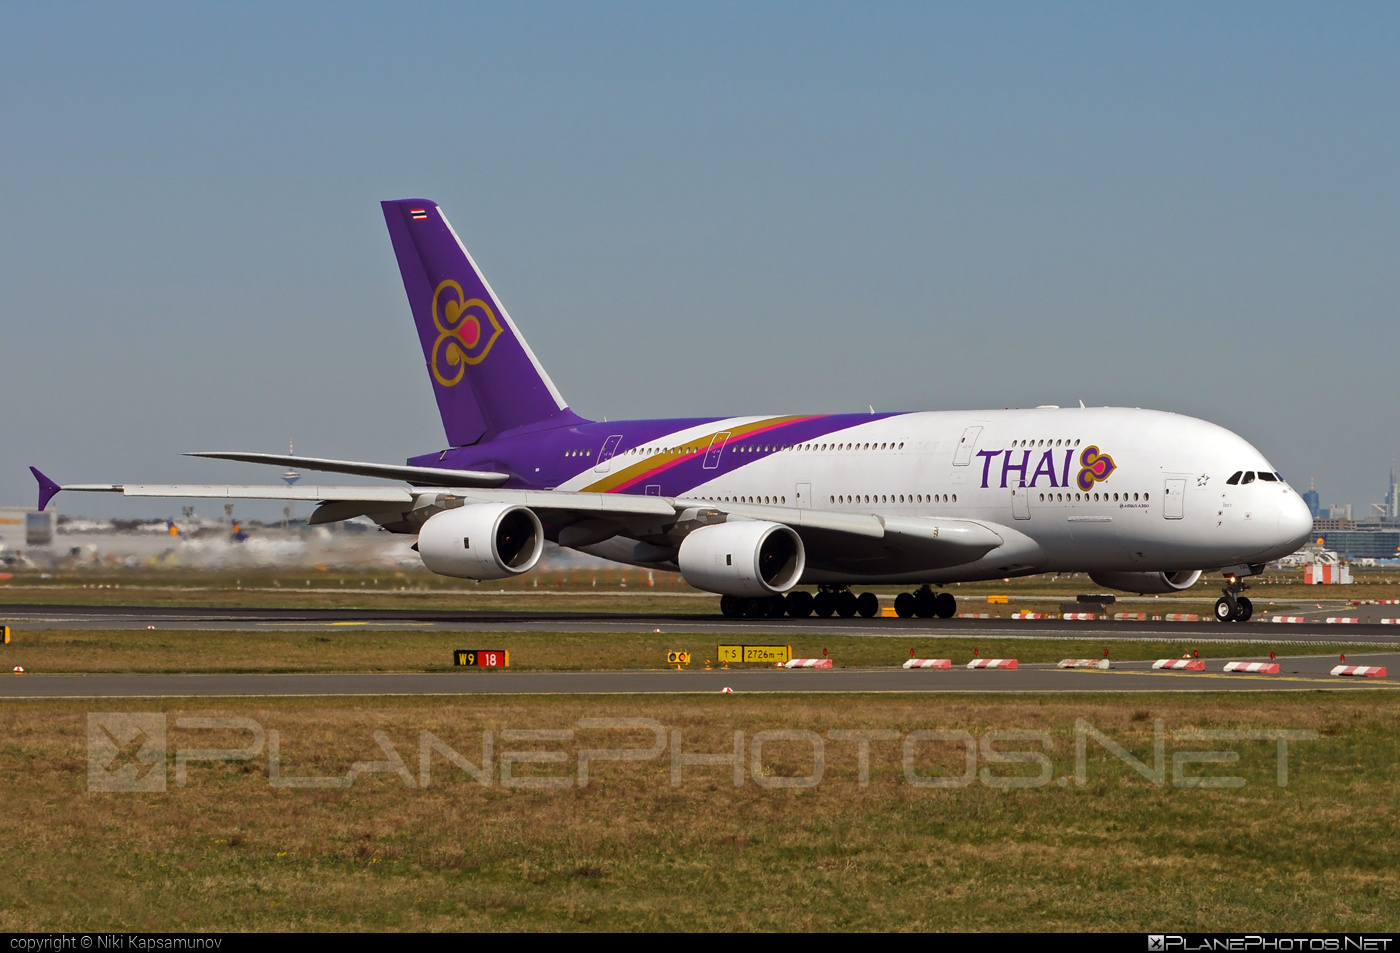 Airbus A380-841 - HS-TUC operated by Thai Airways #a380 #a380family #airbus #airbus380 #thaiairways